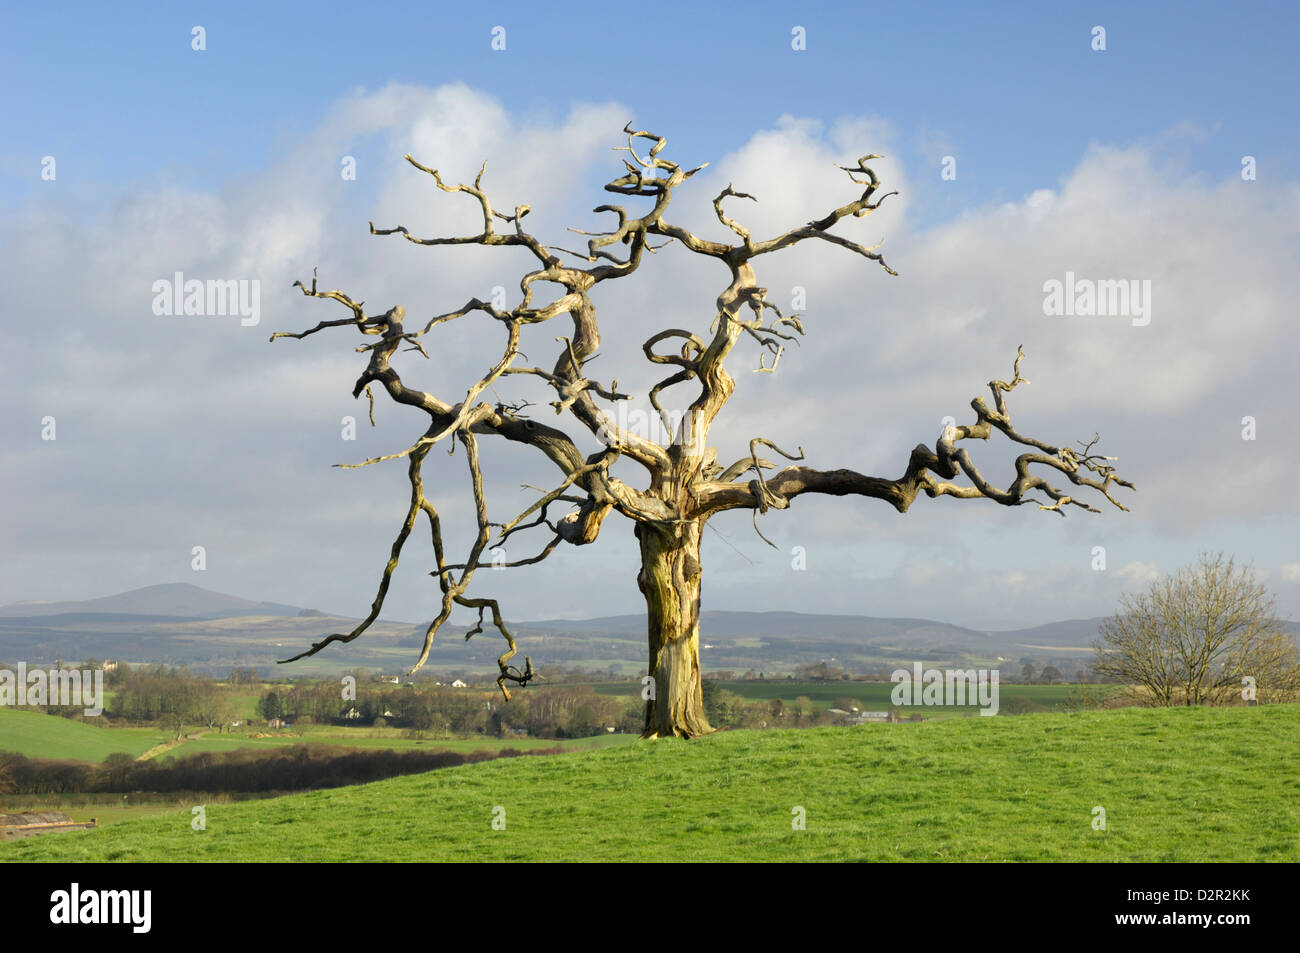 A dead tree forms graphic shapes, United Kingdom, Europe Stock Photo